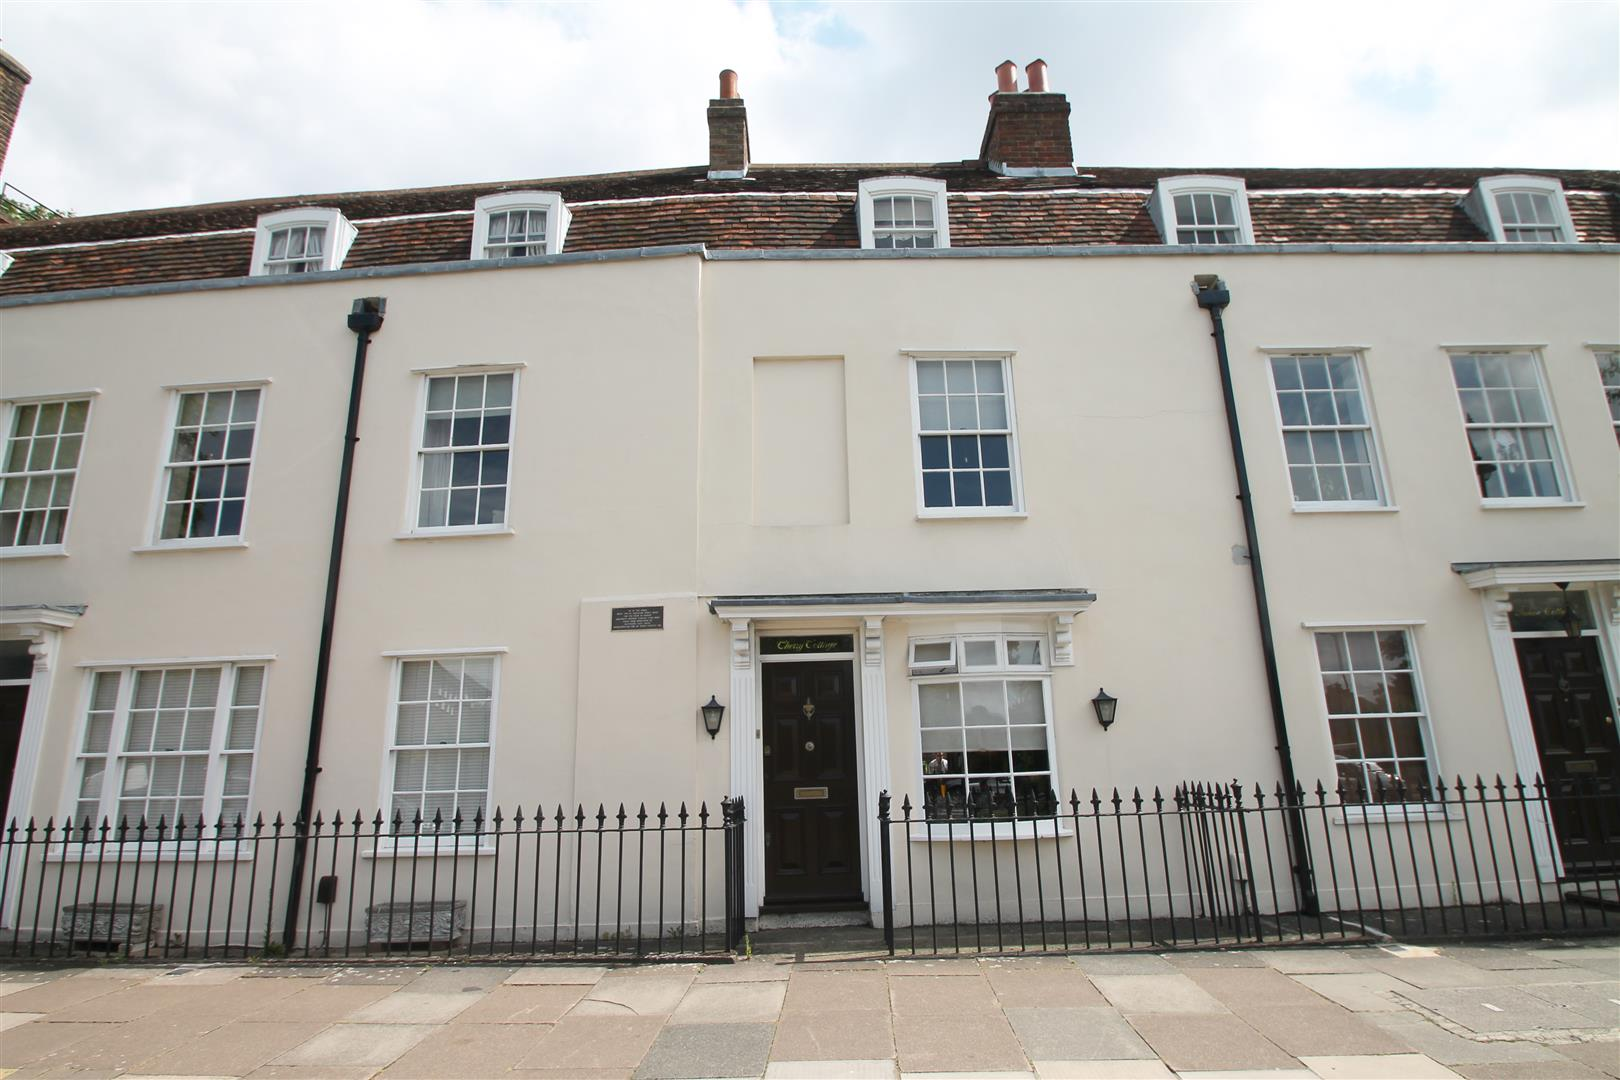 2 Bedrooms Cottage House for sale in The Green, London N14 6EN